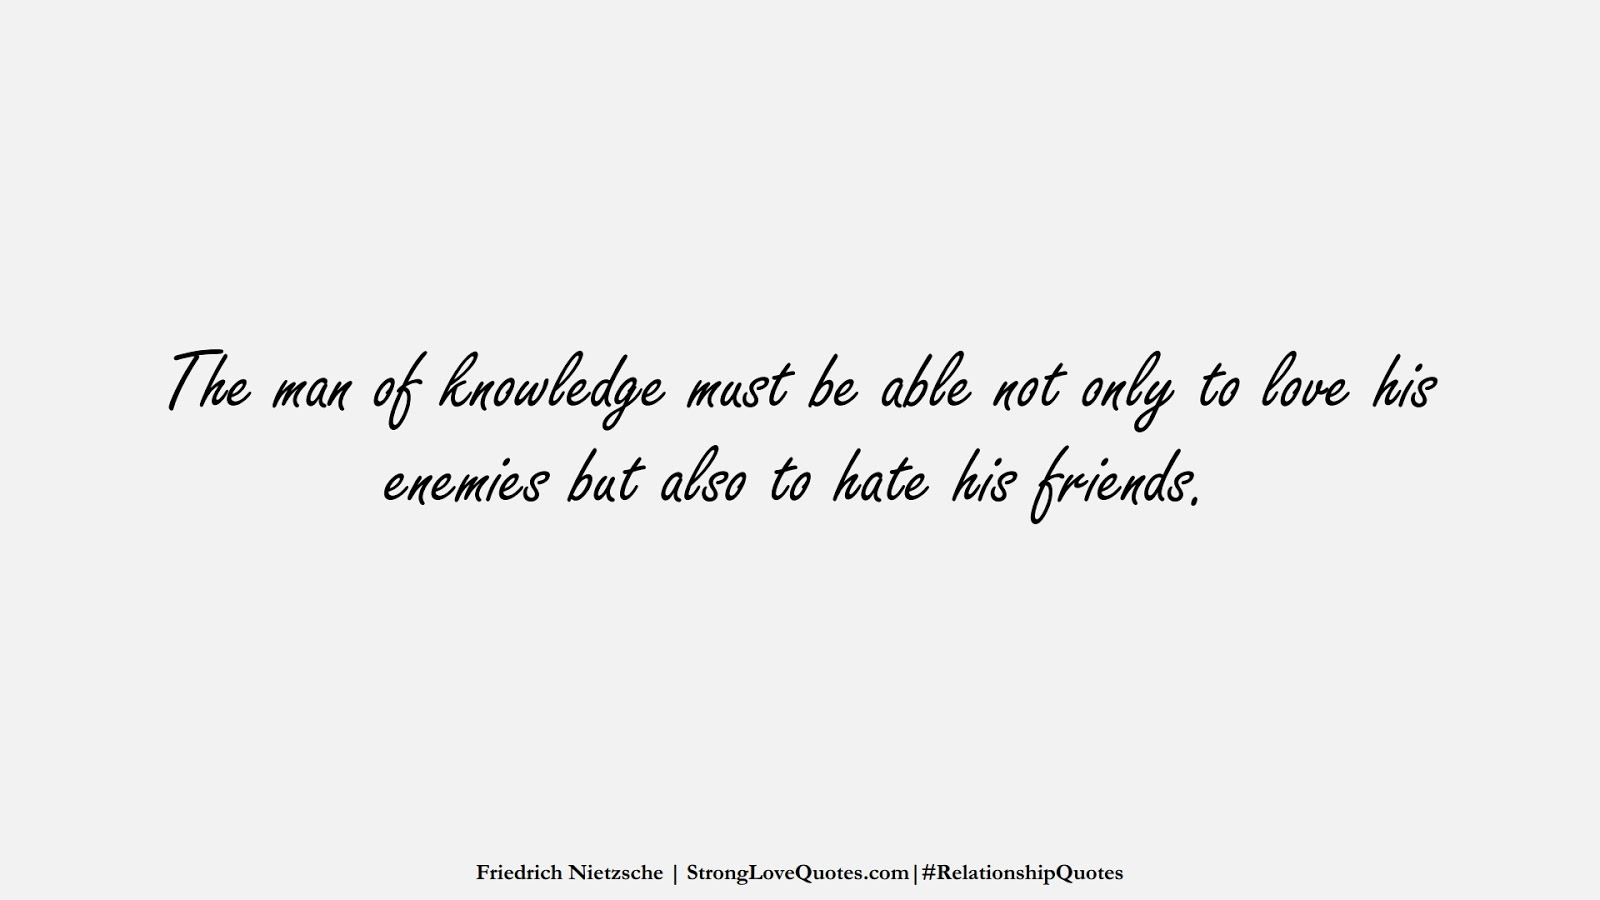 The man of knowledge must be able not only to love his enemies but also to hate his friends. (Friedrich Nietzsche);  #RelationshipQuotes